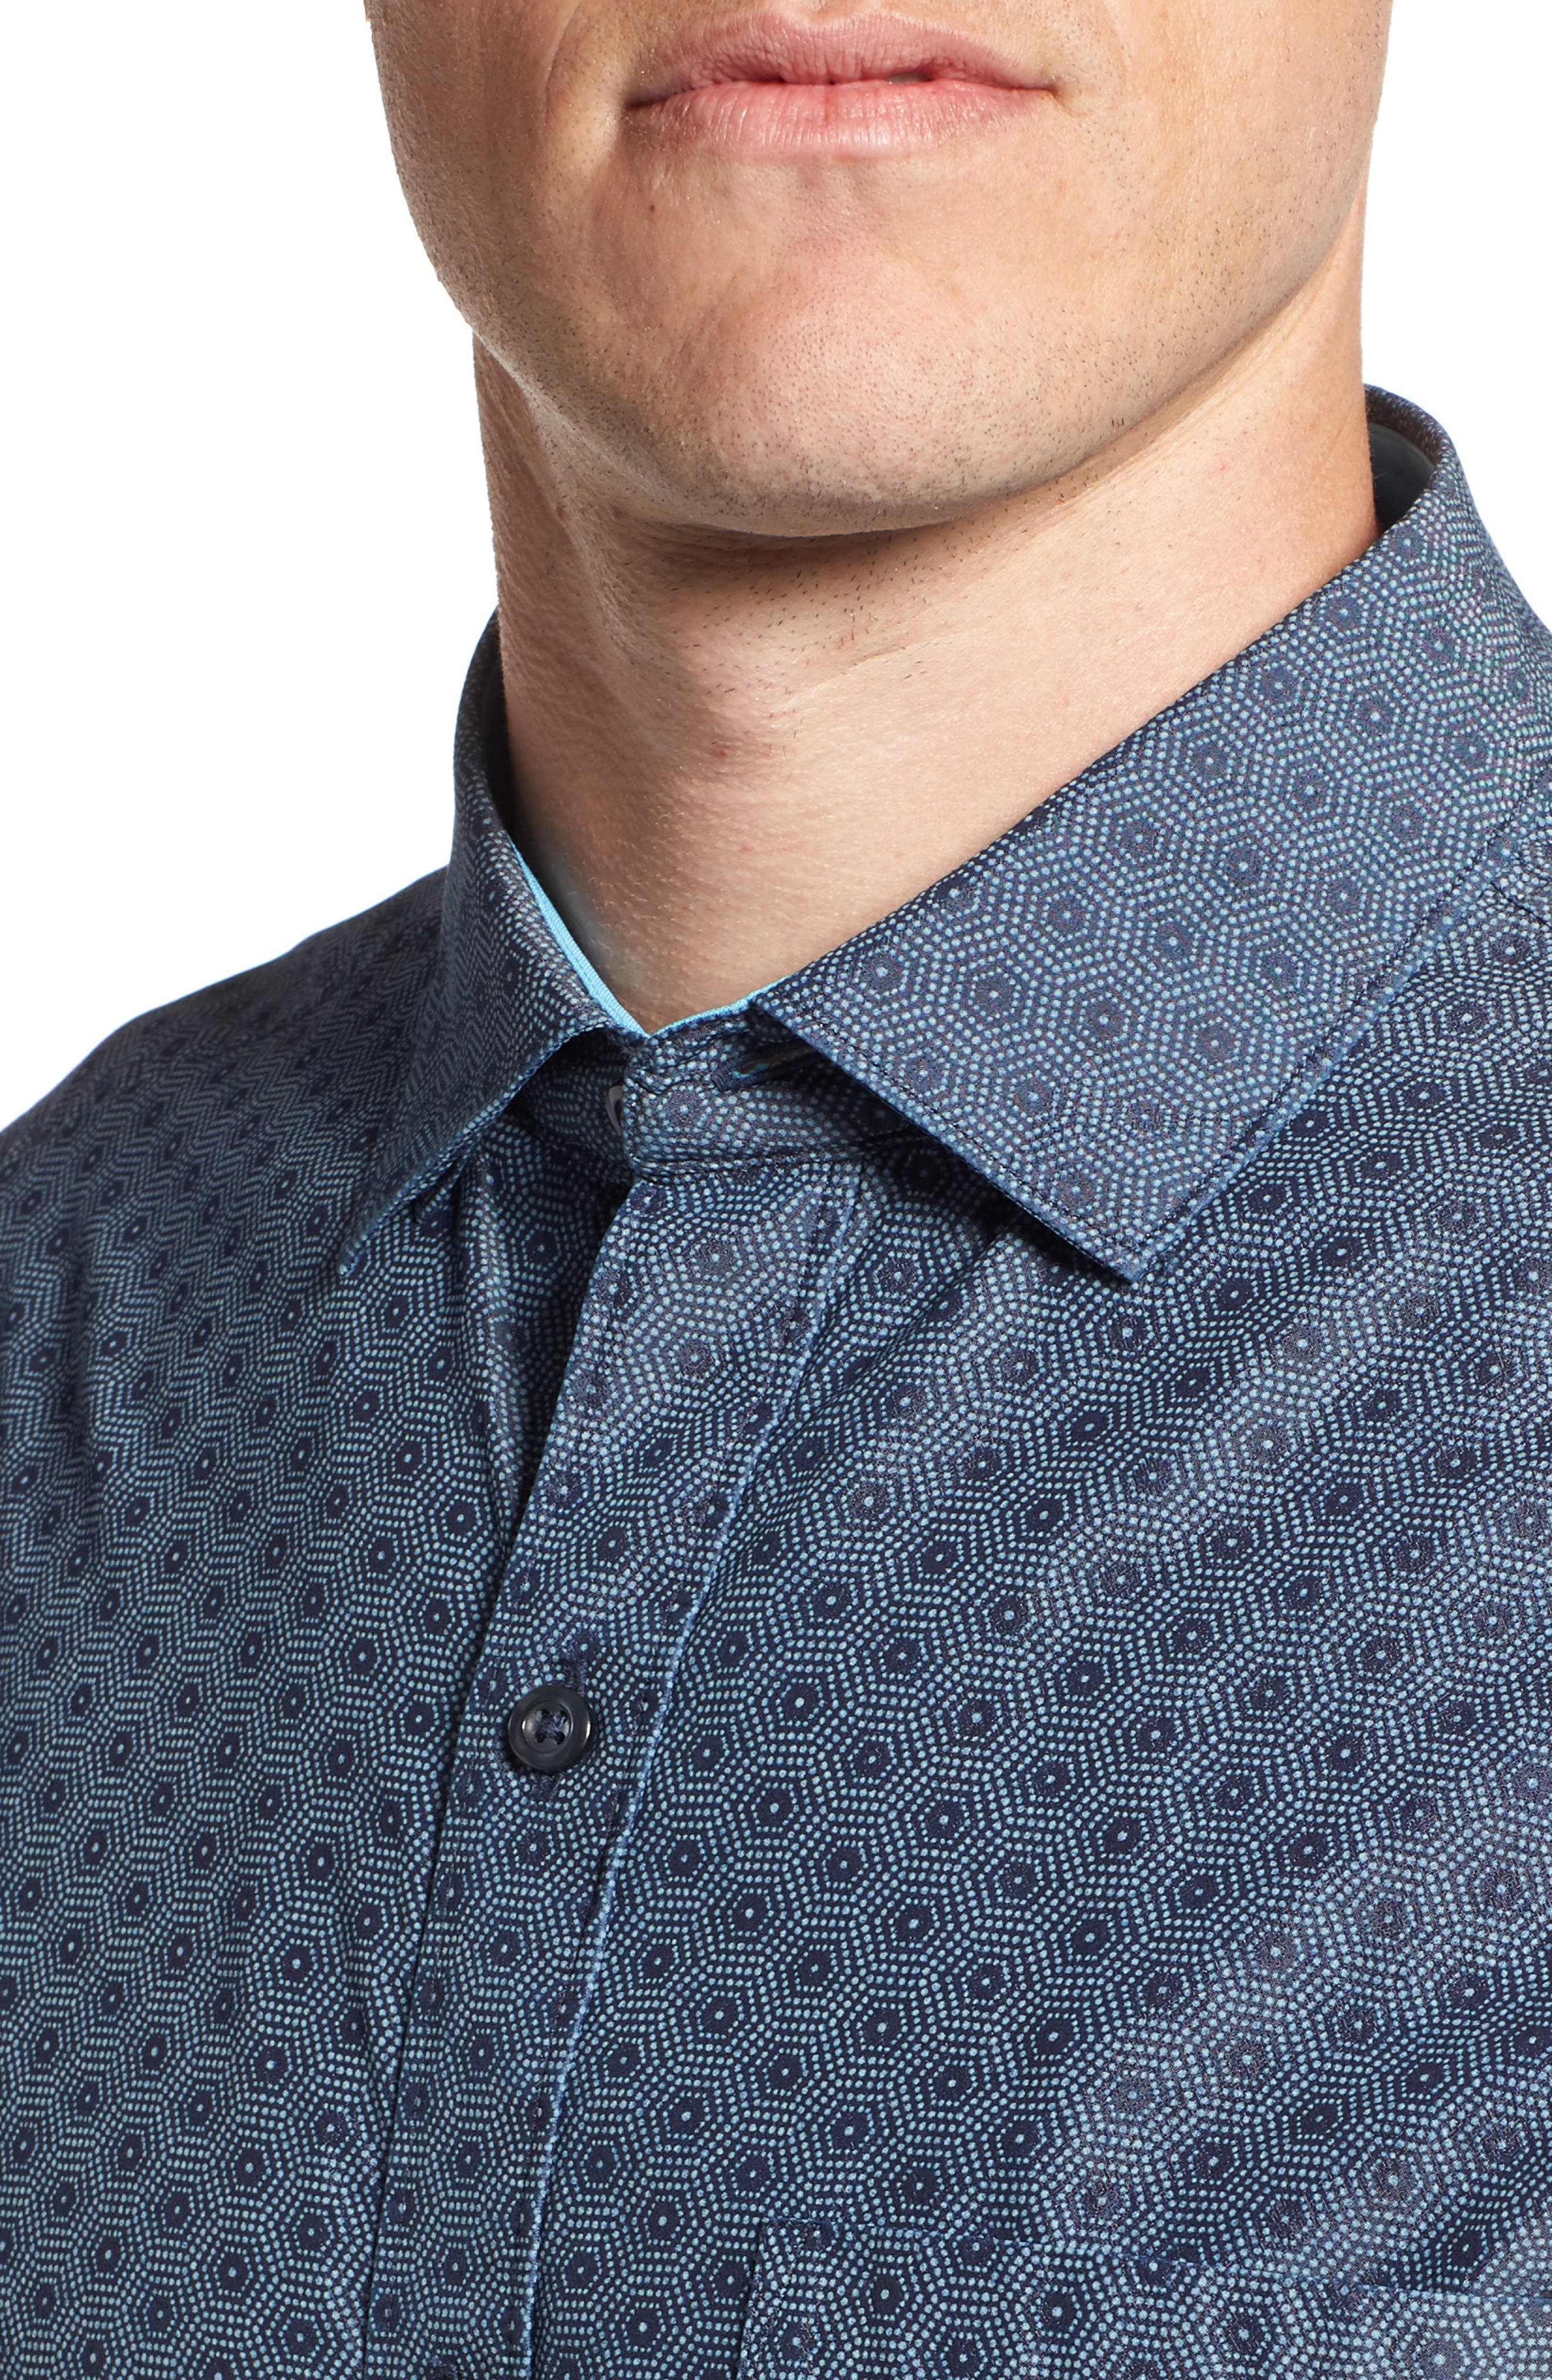 Rio del Geo Sport Shirt,                             Alternate thumbnail 4, color,                             OCEAN DEEP